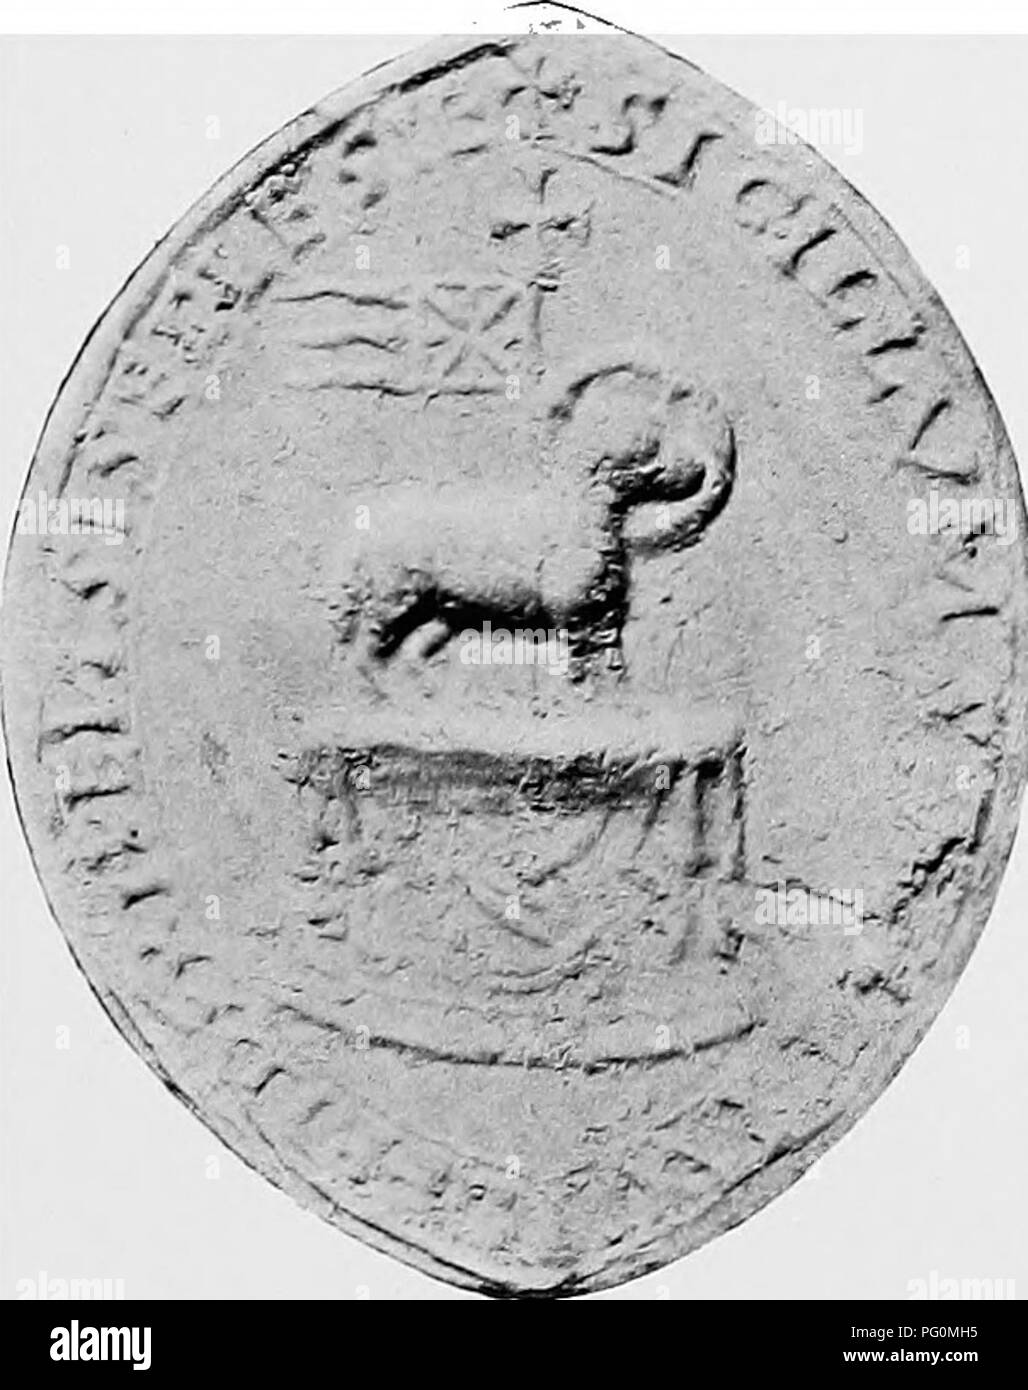 . The Victoria history of the county of York;. Natural history. Trinity Hospital, Fossgate, York (14TH Century). RiPON Collegiate Church (i2Th Century) St. William's College, York ([4TH Century) Yorkshire Monastic Seals—Plate III. Please note that these images are extracted from scanned page images that may have been digitally enhanced for readability - coloration and appearance of these illustrations may not perfectly resemble the original work.. Page, William, 1861-1934, ed. London, A. Constable and company, limited - Stock Image